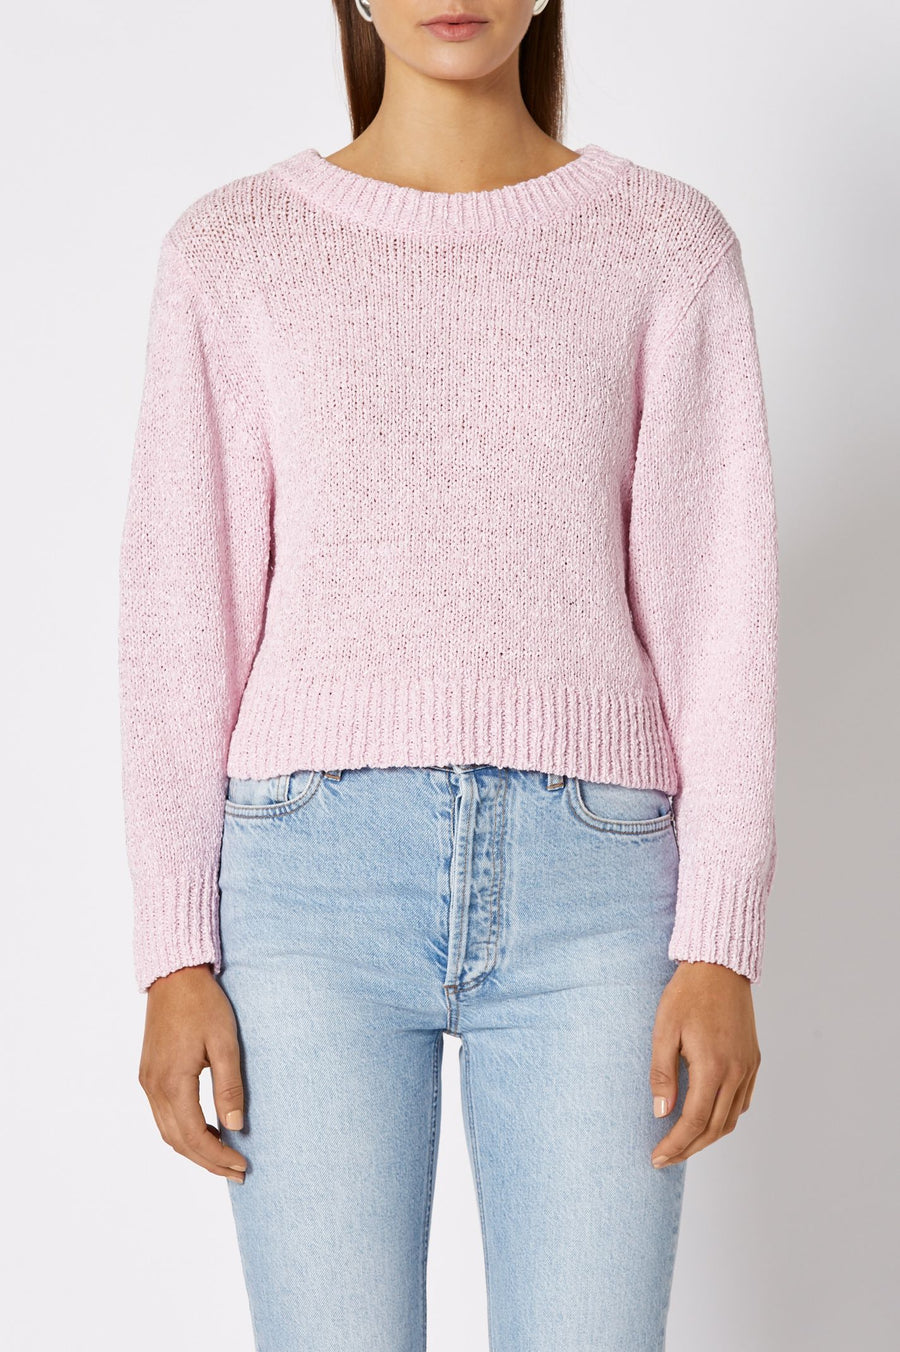 CROPPED SWEATER 3, Ribbed neckline, hem and sleeve openings